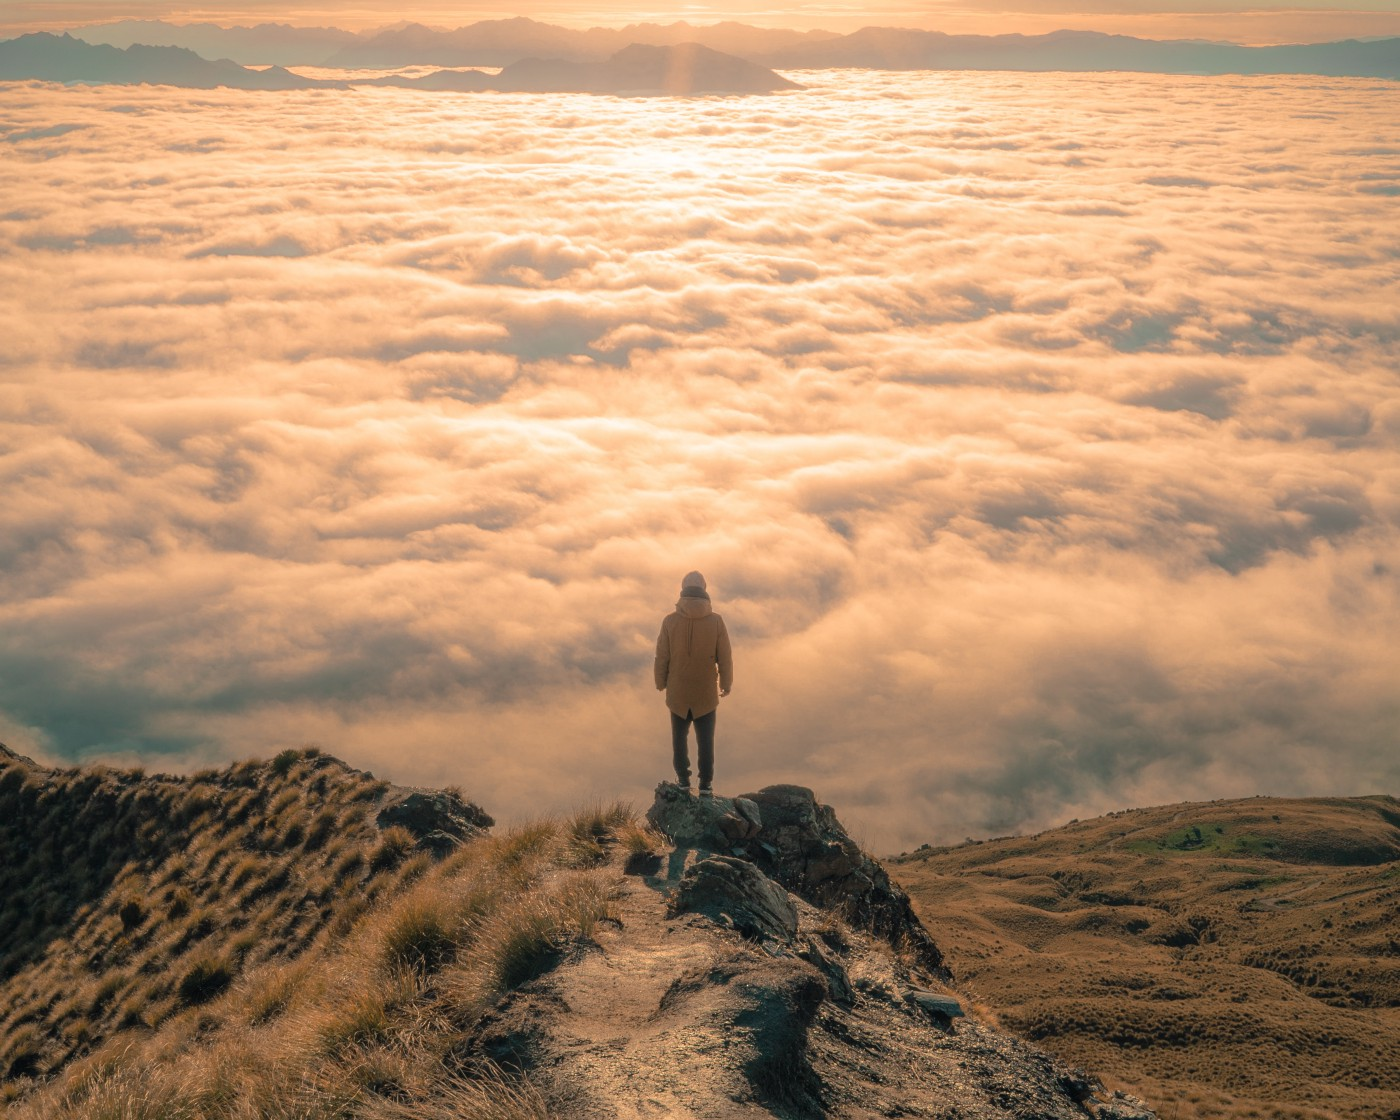 A man standing on a mountain peak overlooking the clouds.